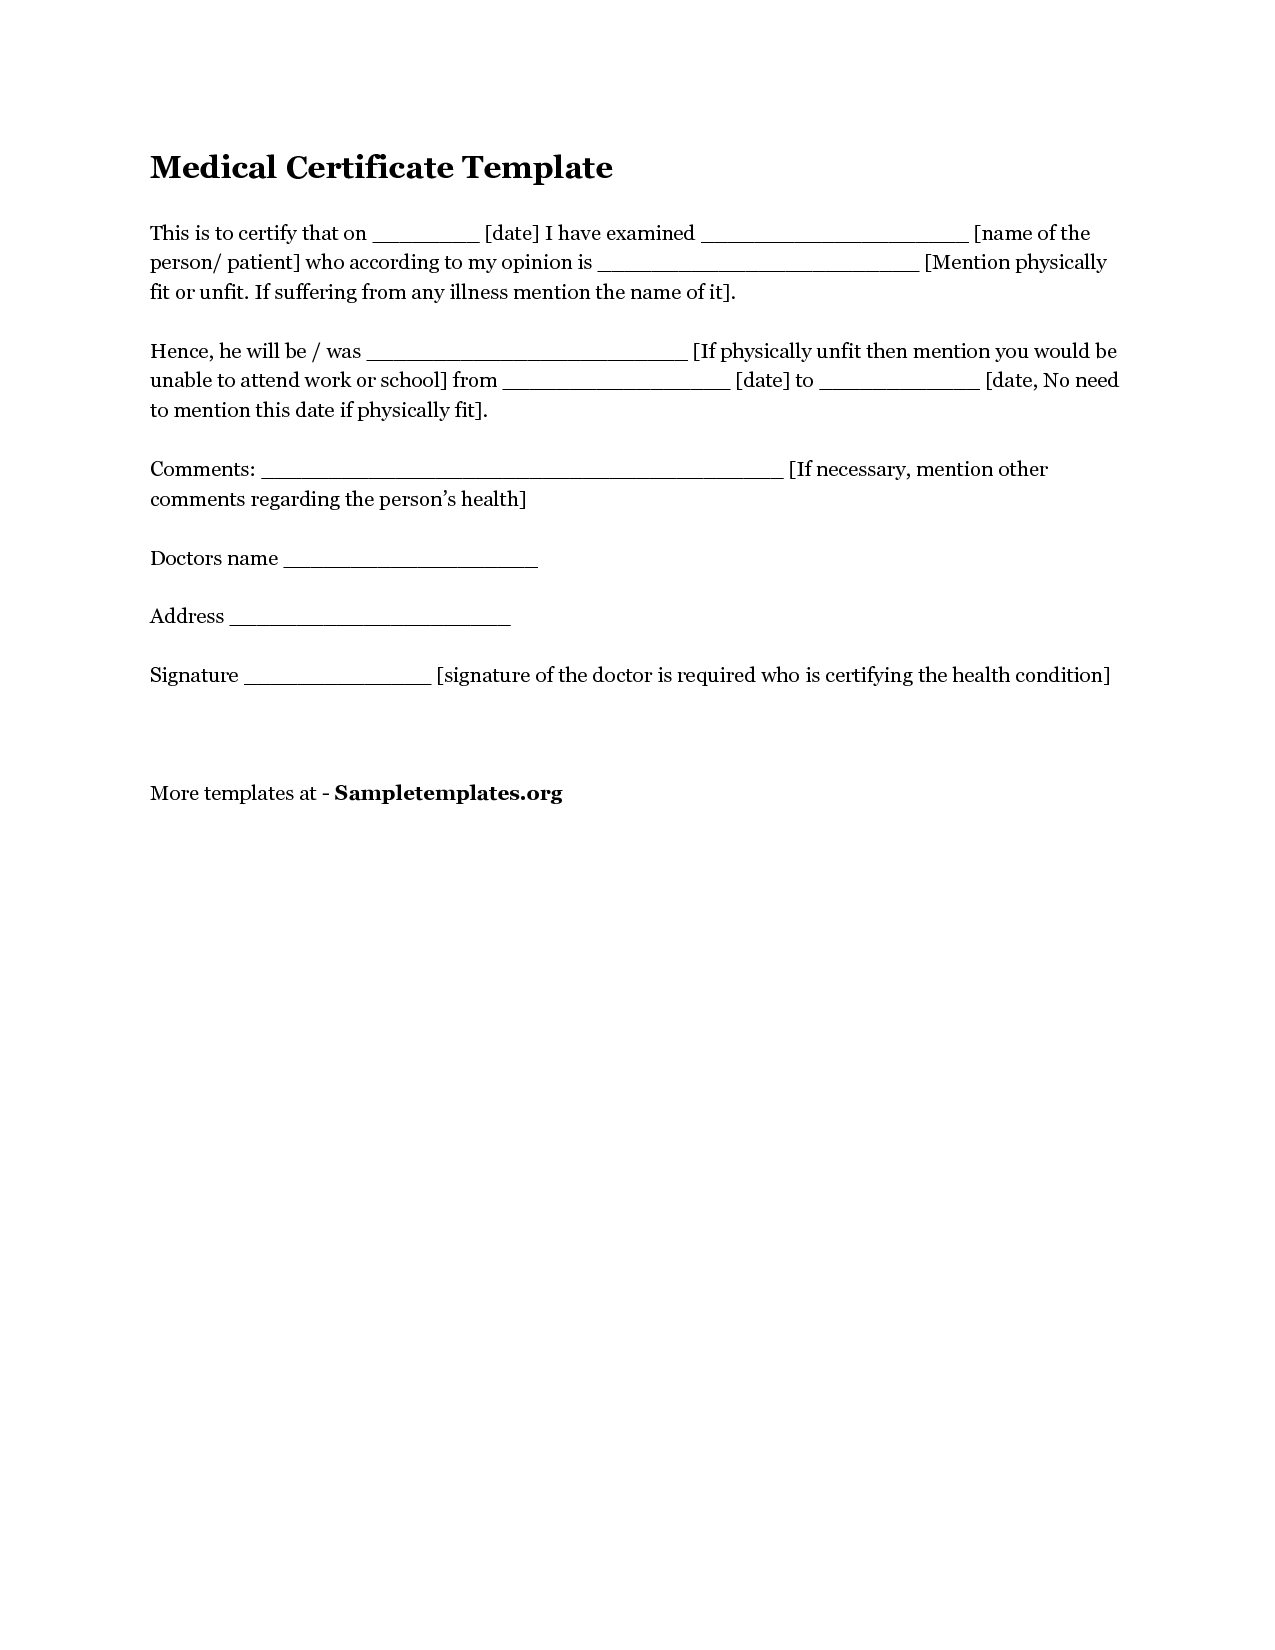 Medical Certificate Template Download Medical Certificate Template1  Resume Examples  Pinterest .